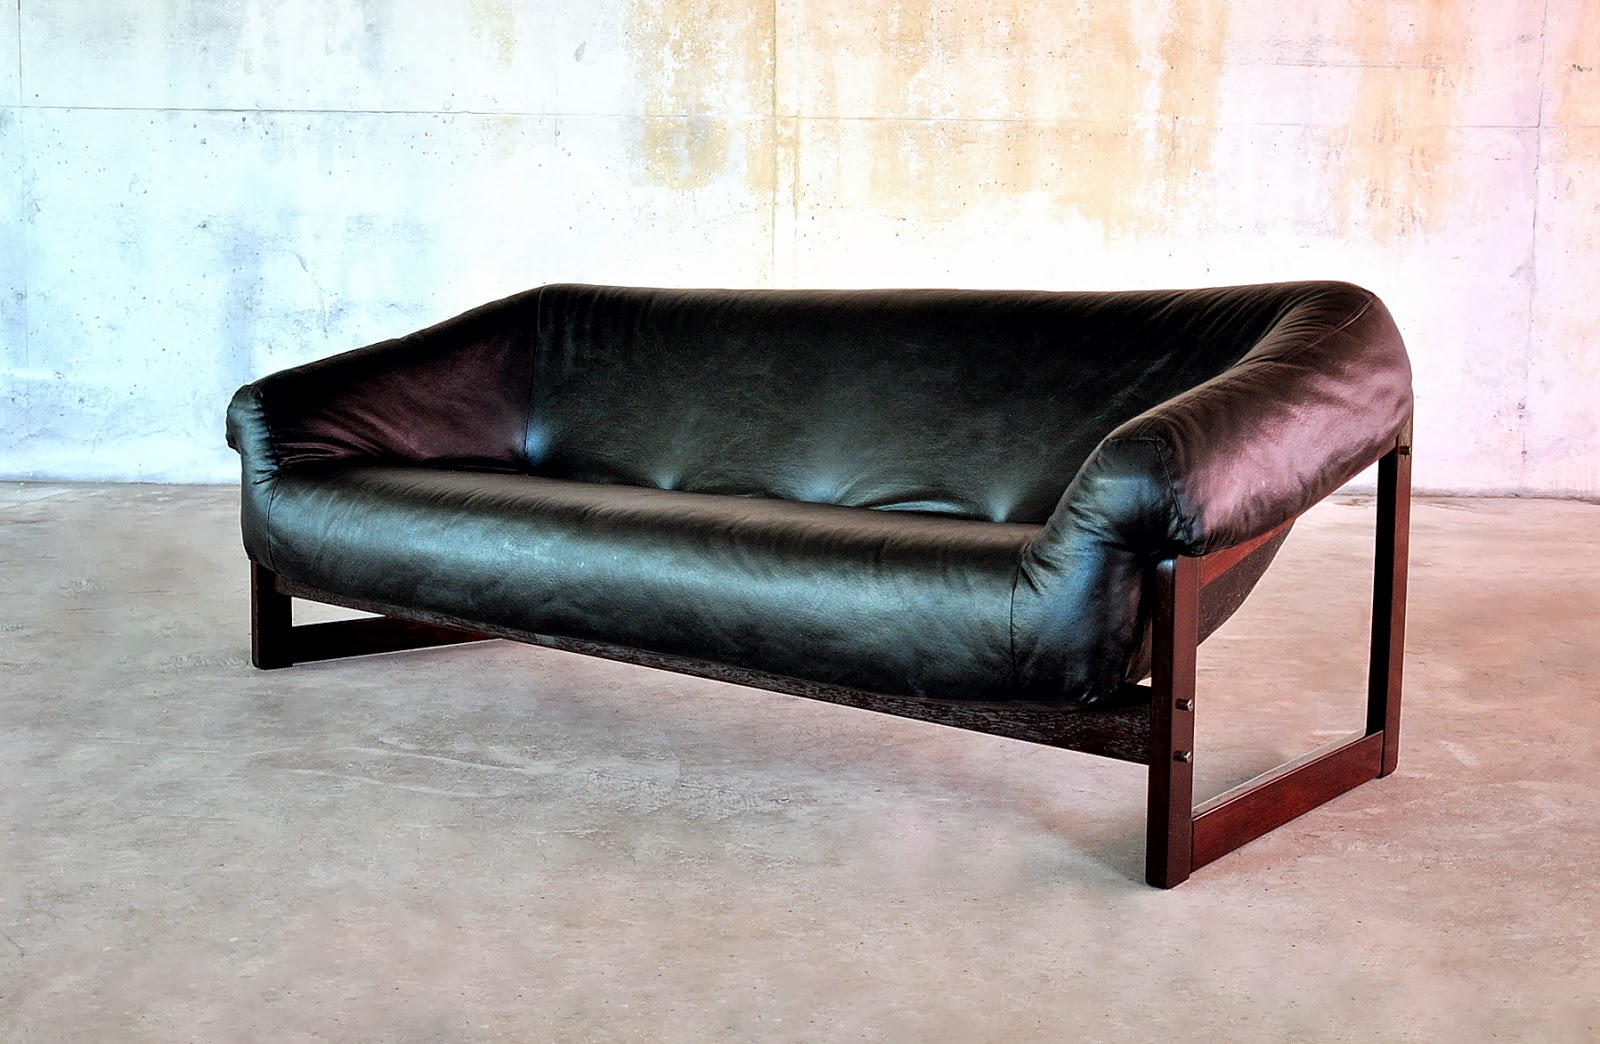 Percival Lafer Sofa Bed 0 Finance Select Modern